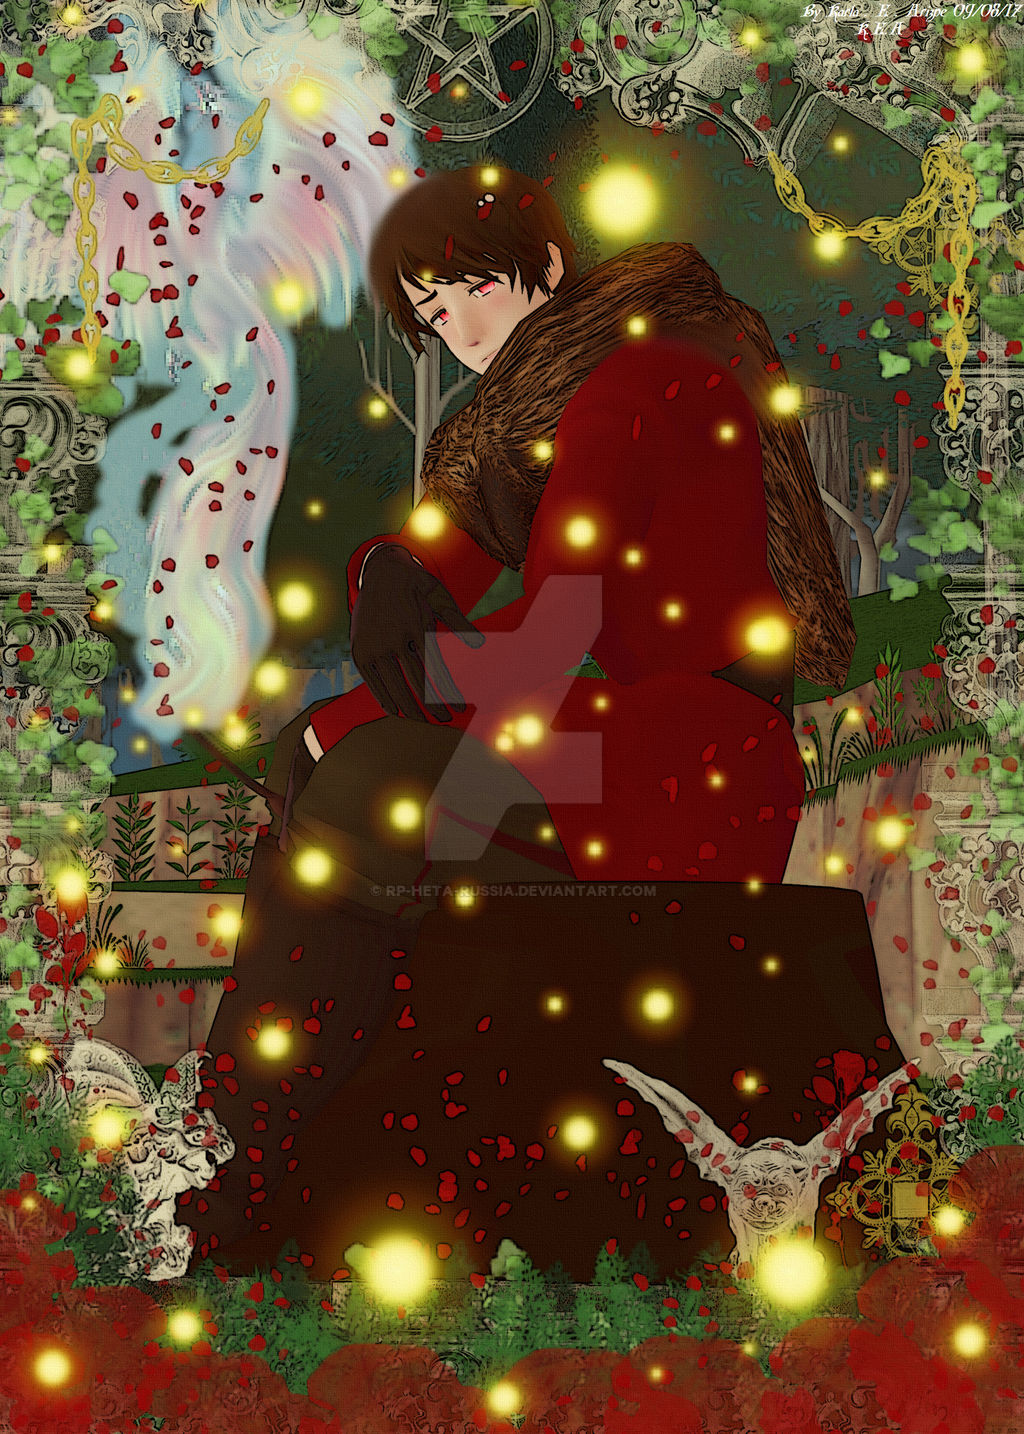 Viktor Durmstrang 2p Russia Withhisphoenixpatronus By Rp Heta Russia On Deviantart This page is all about the events, schedules and rp occuring in. deviantart